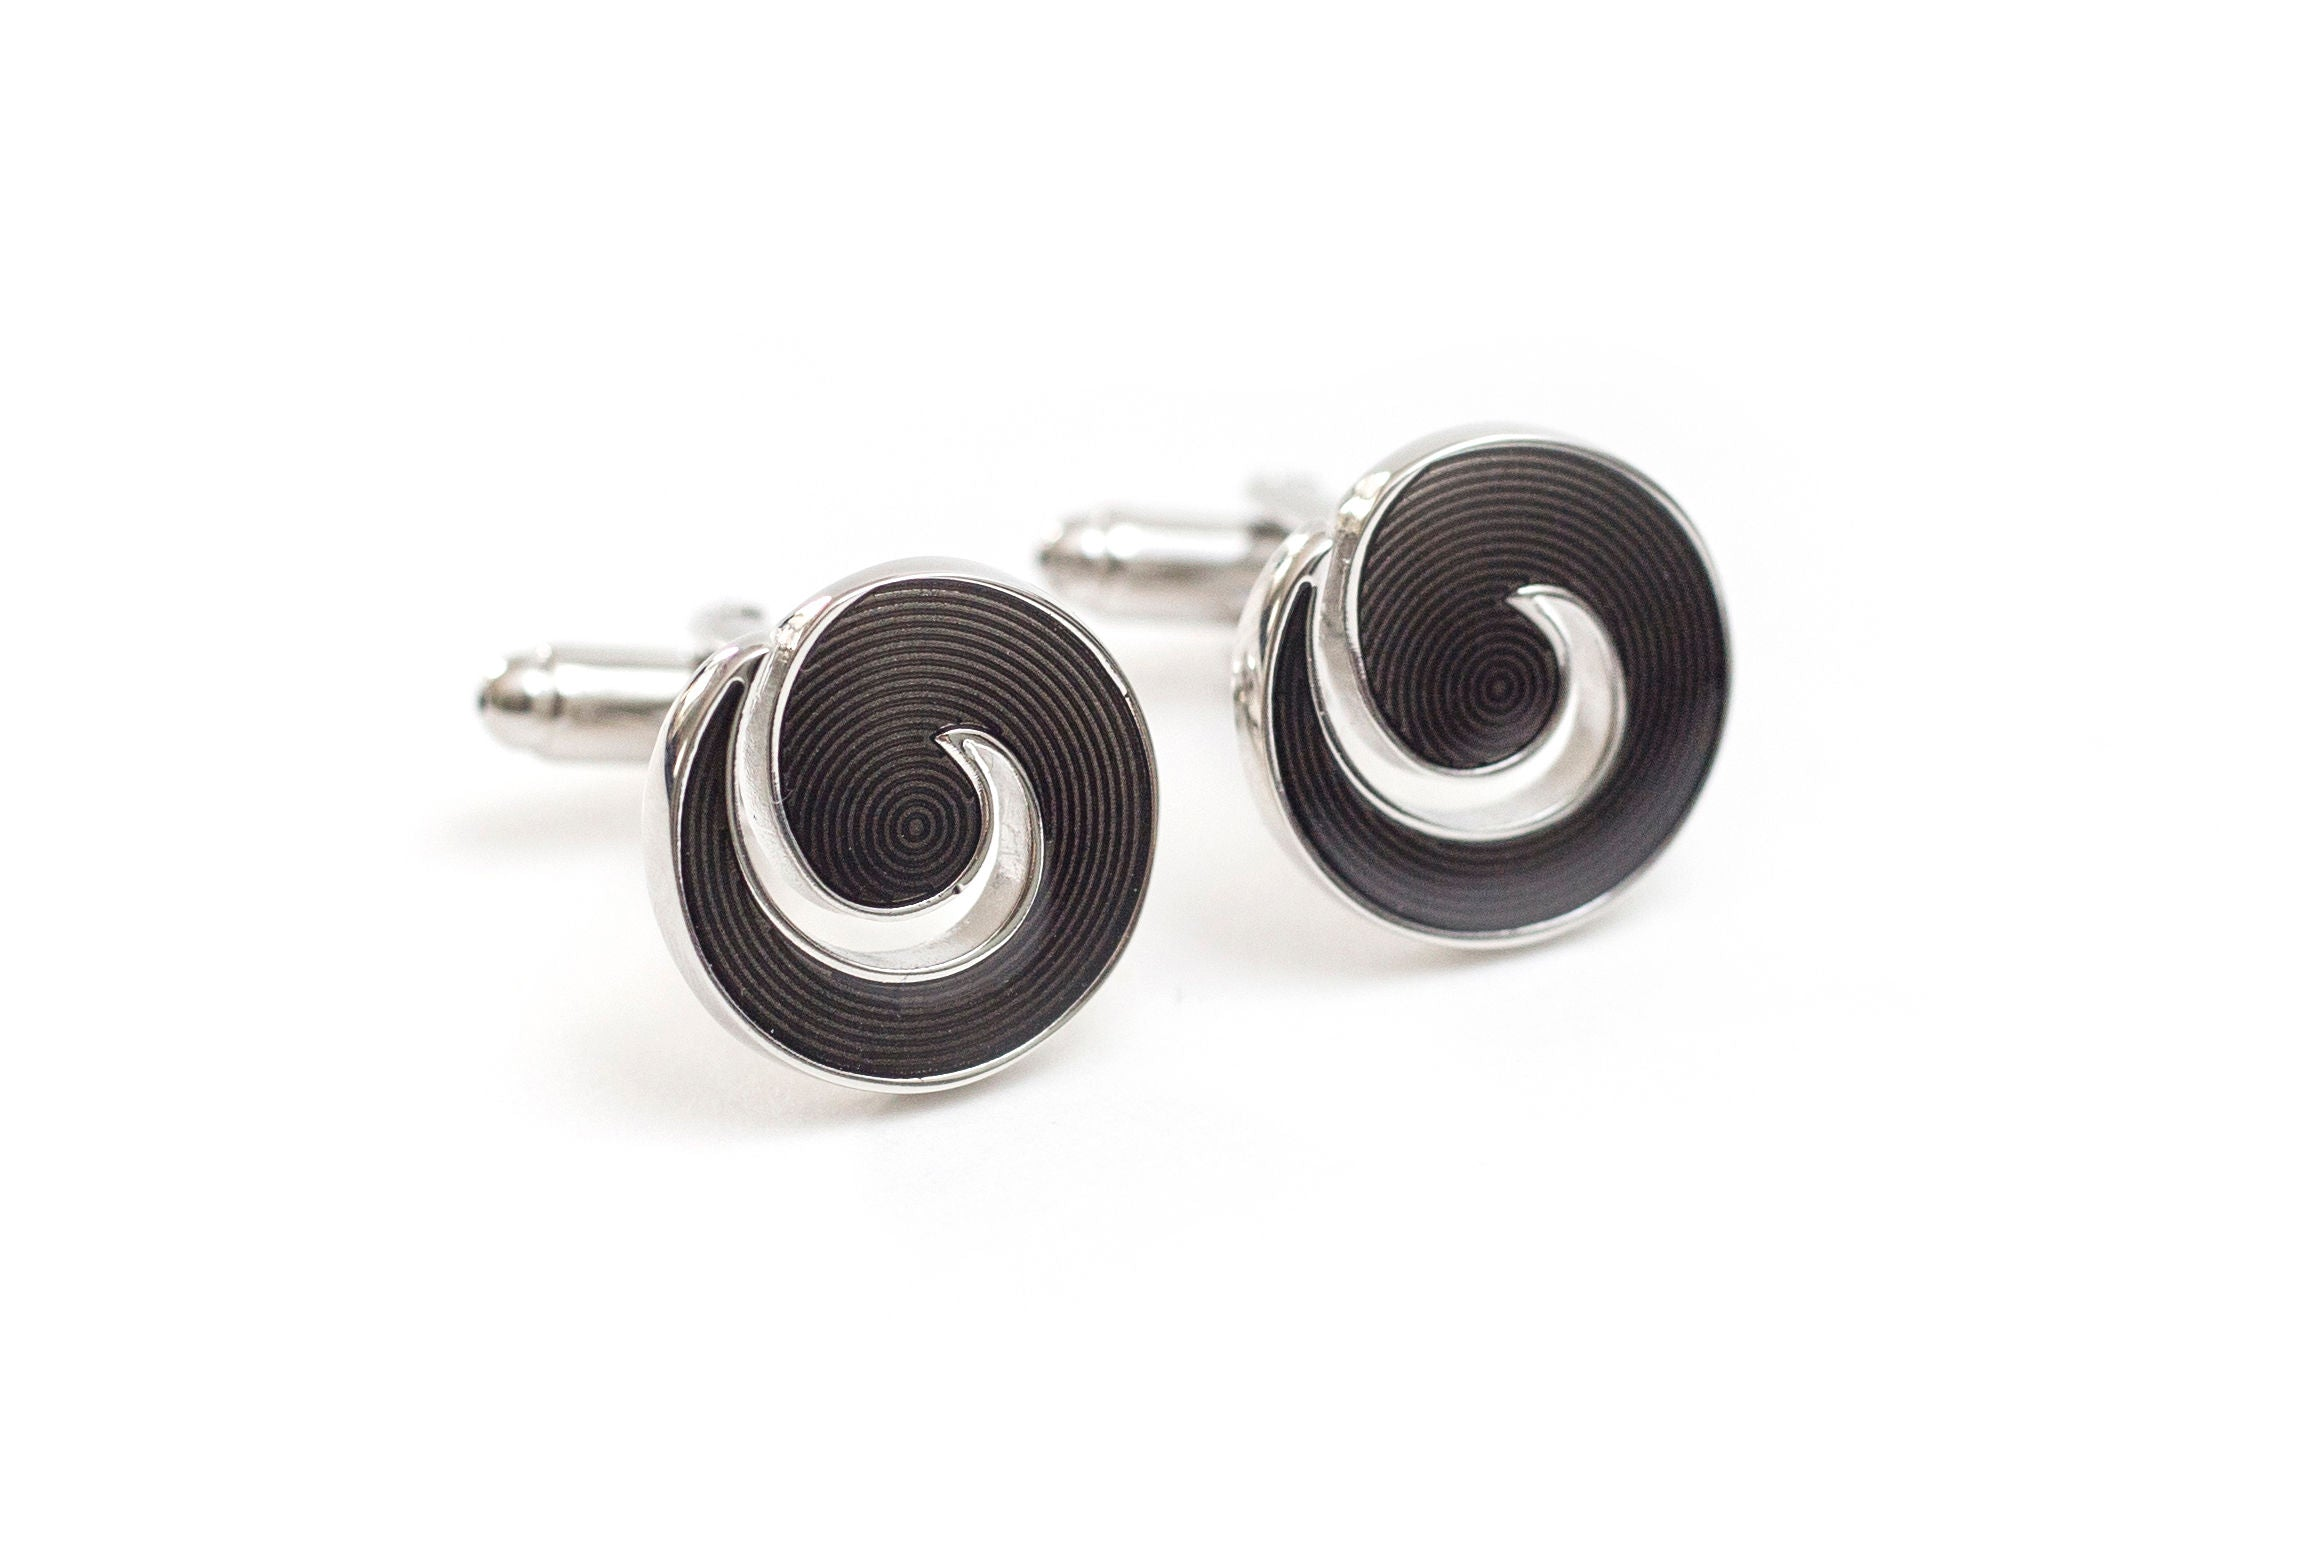 Black Cyclone Cuff Links